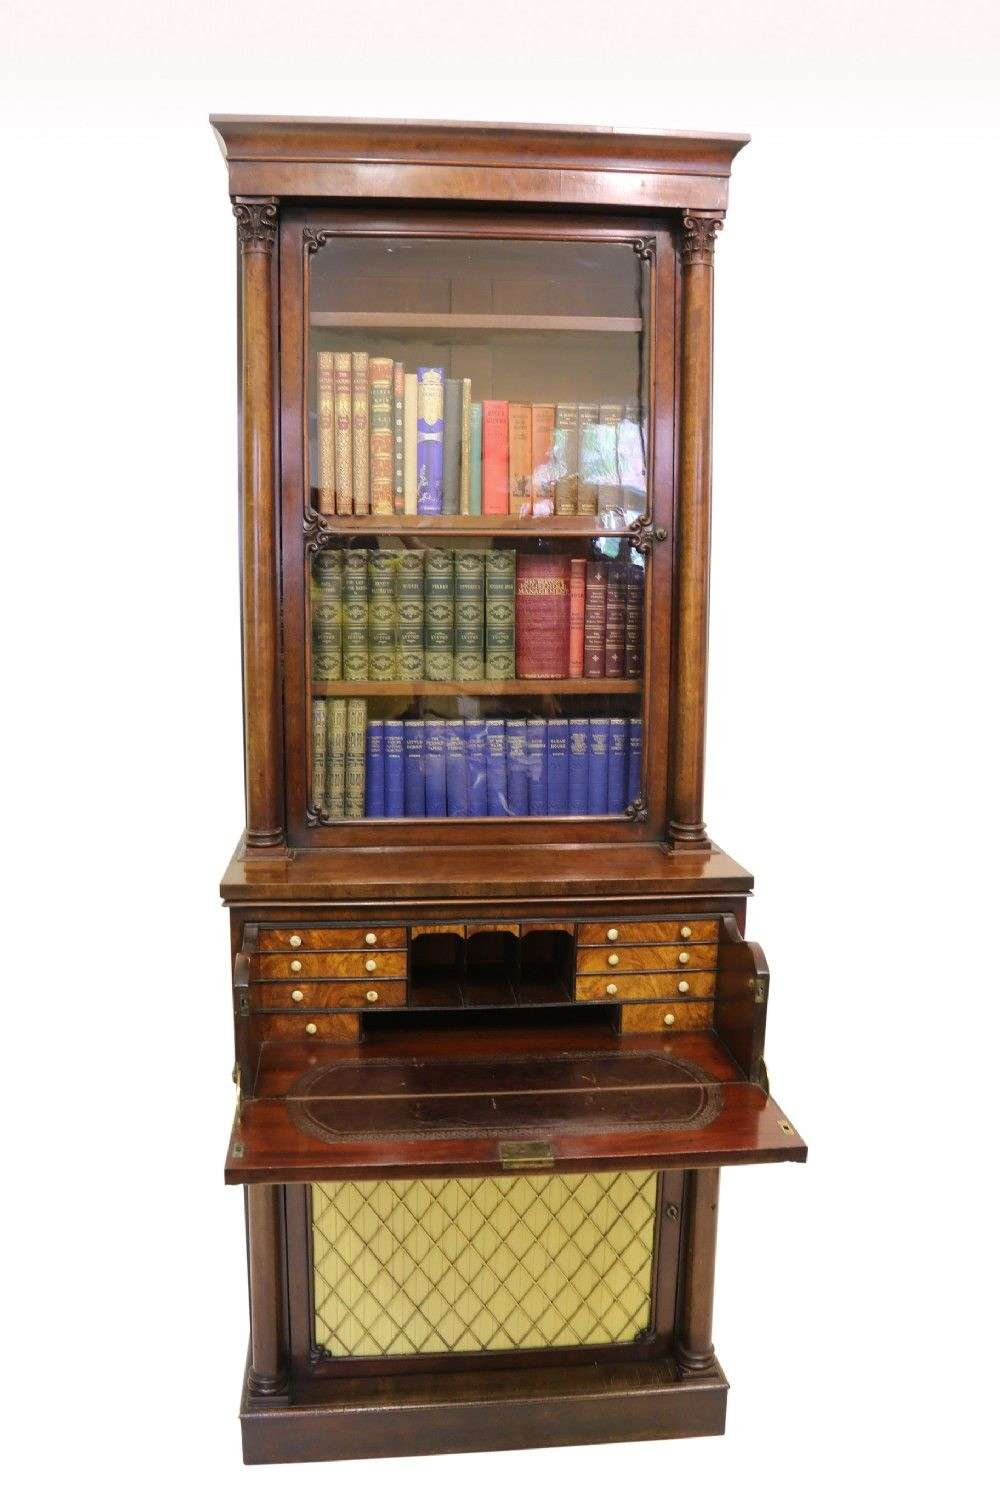 A Rare Small Regency Mahogany Secretaire Bookcase By Gillows Of Lancaster